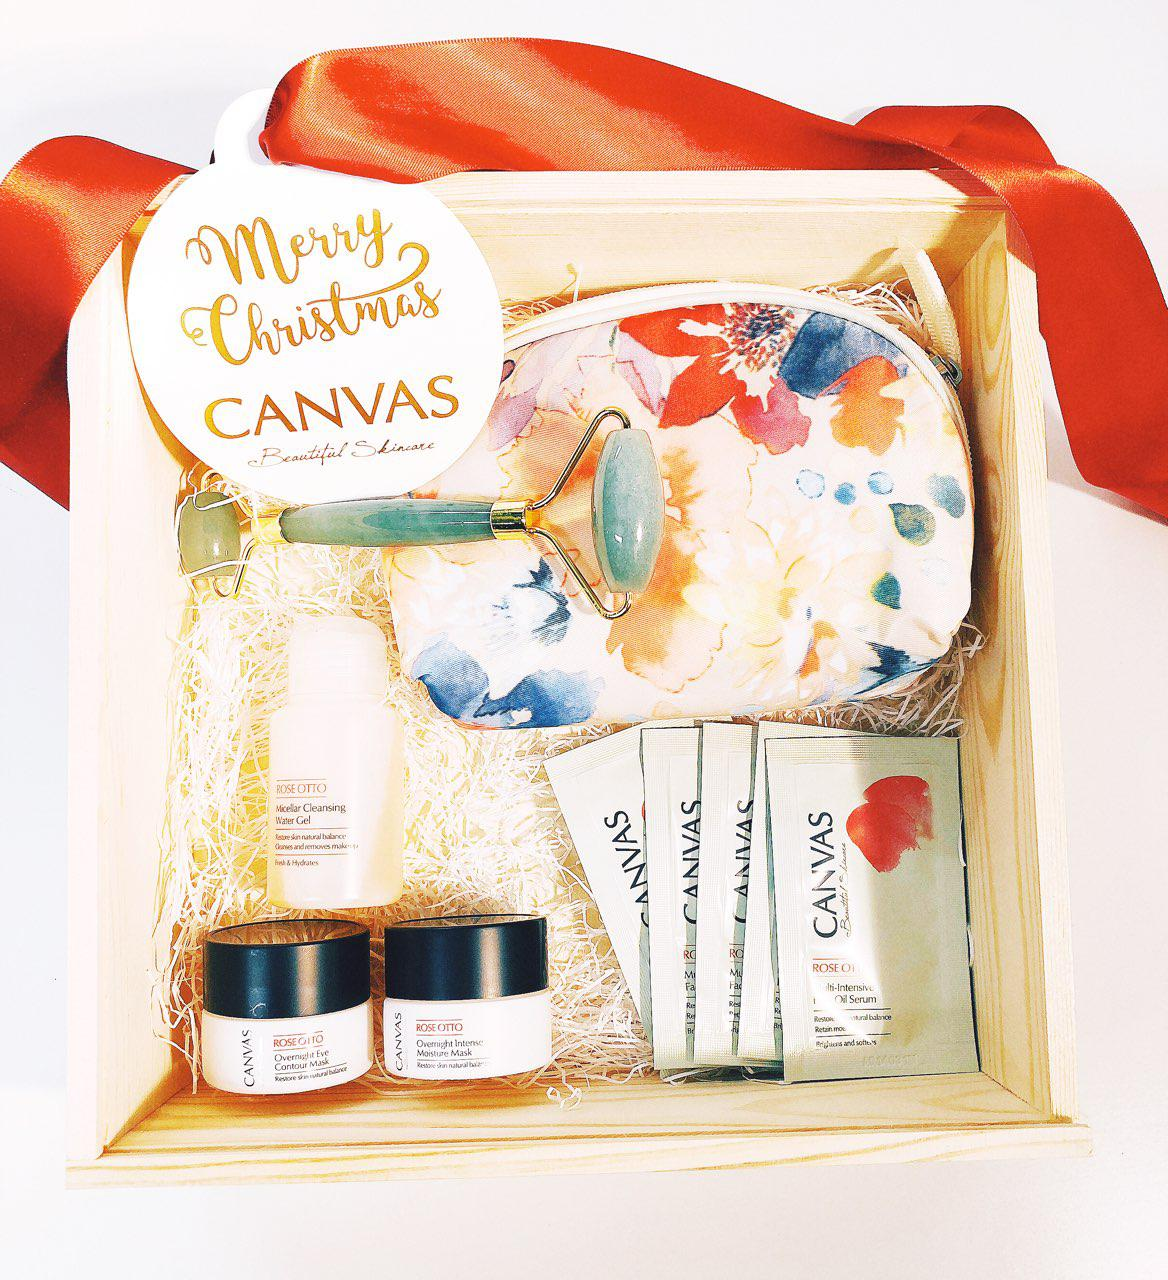 CANVAS Revitalizing Gift Set